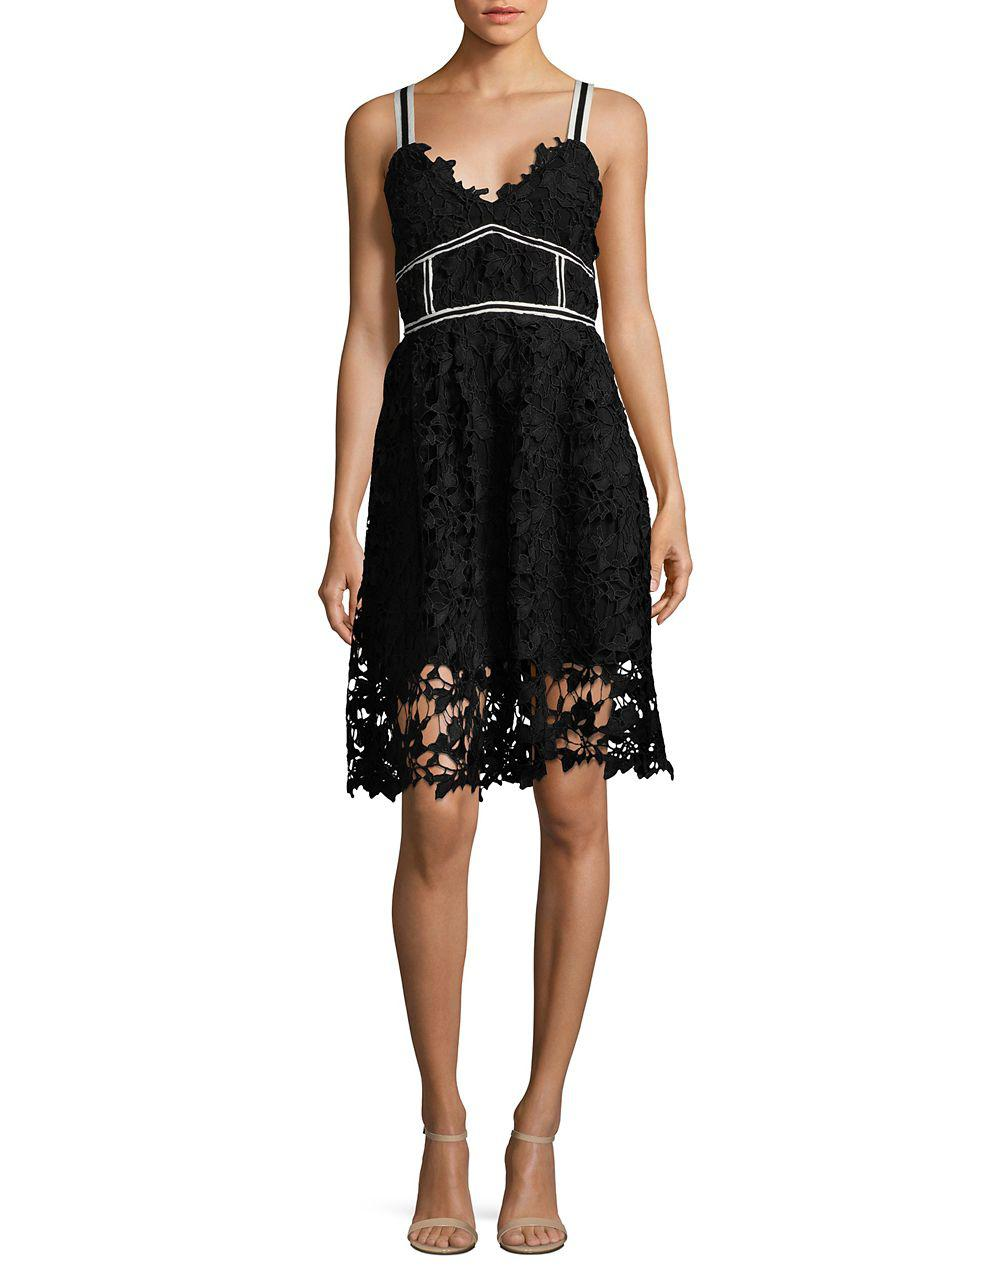 Lyst - Lord & Taylor Textured V-neck Lace Dress in Black